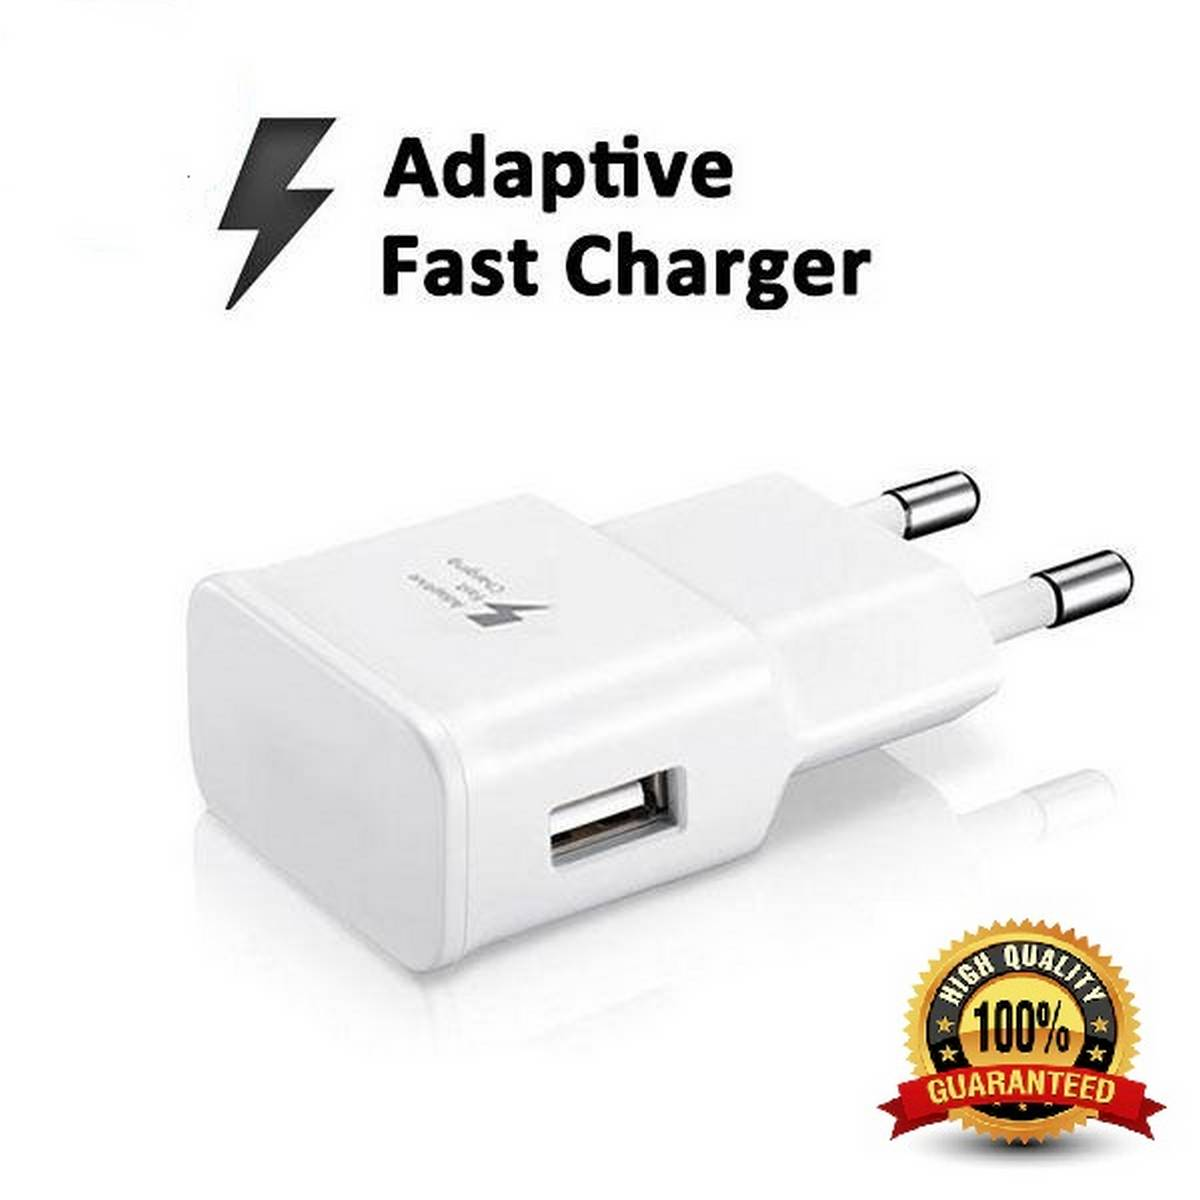 Fast Charger Quick Charge for all Smartphones